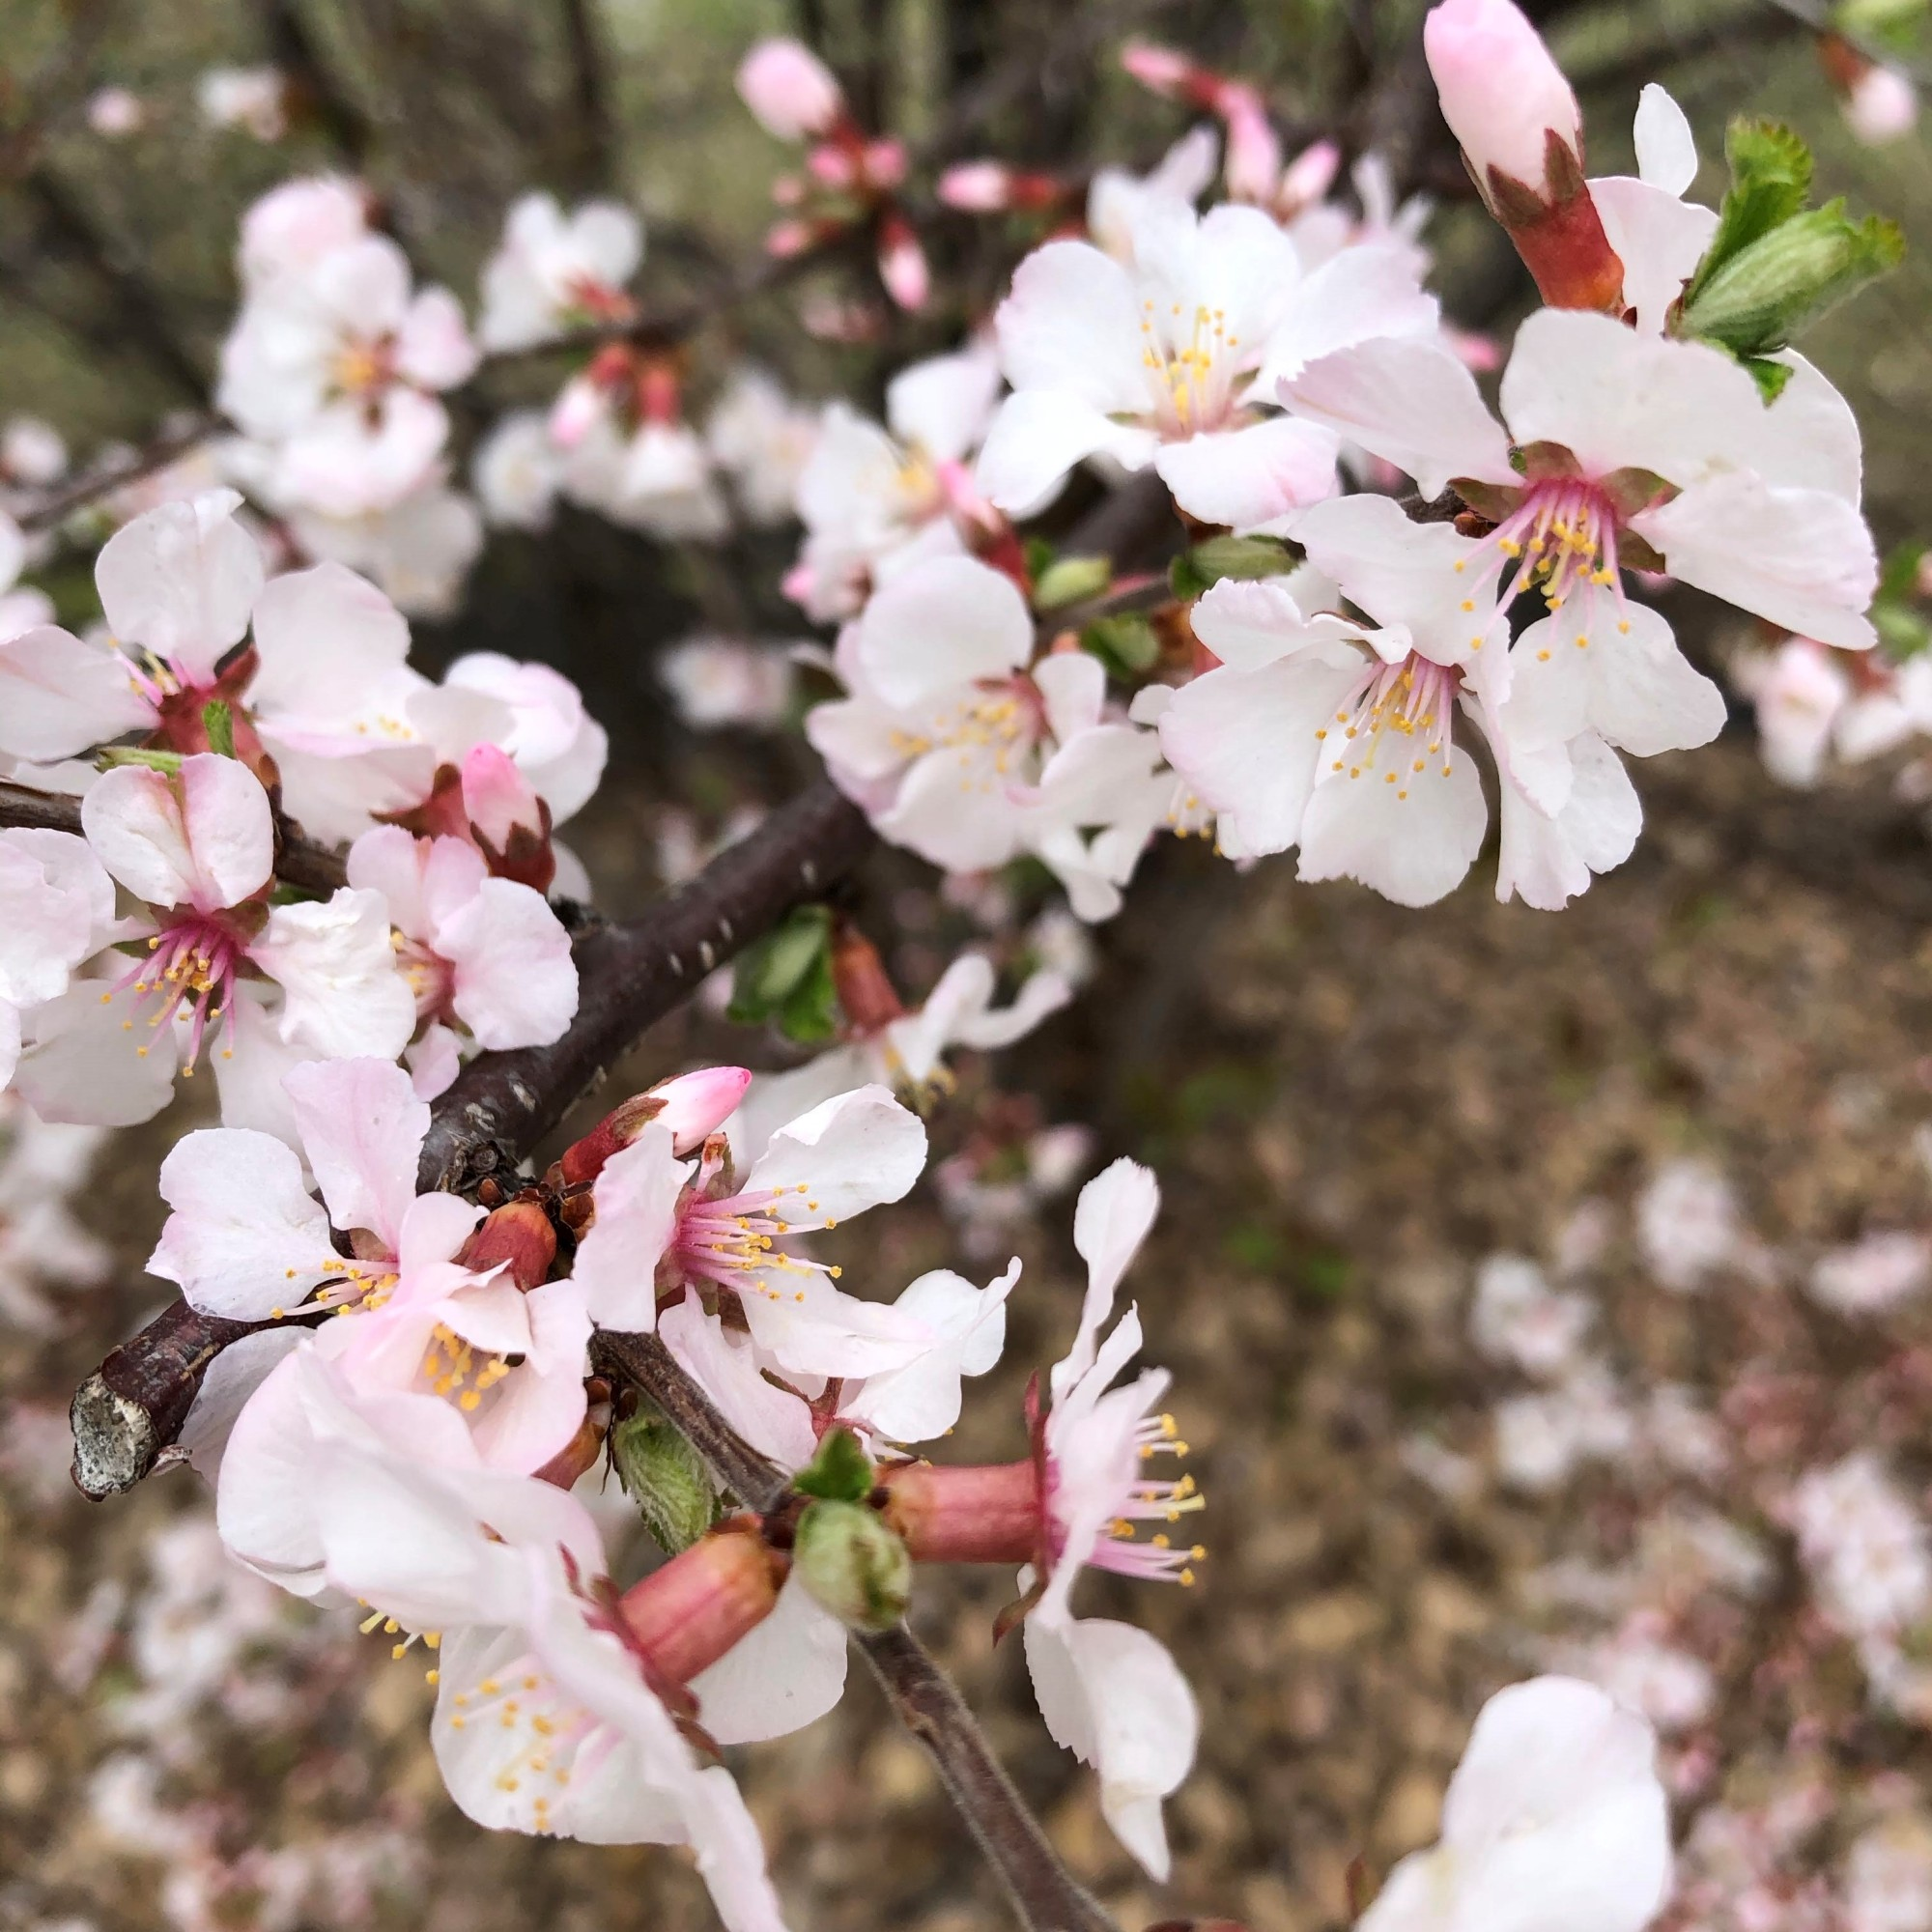 light pink and white apple blossoms